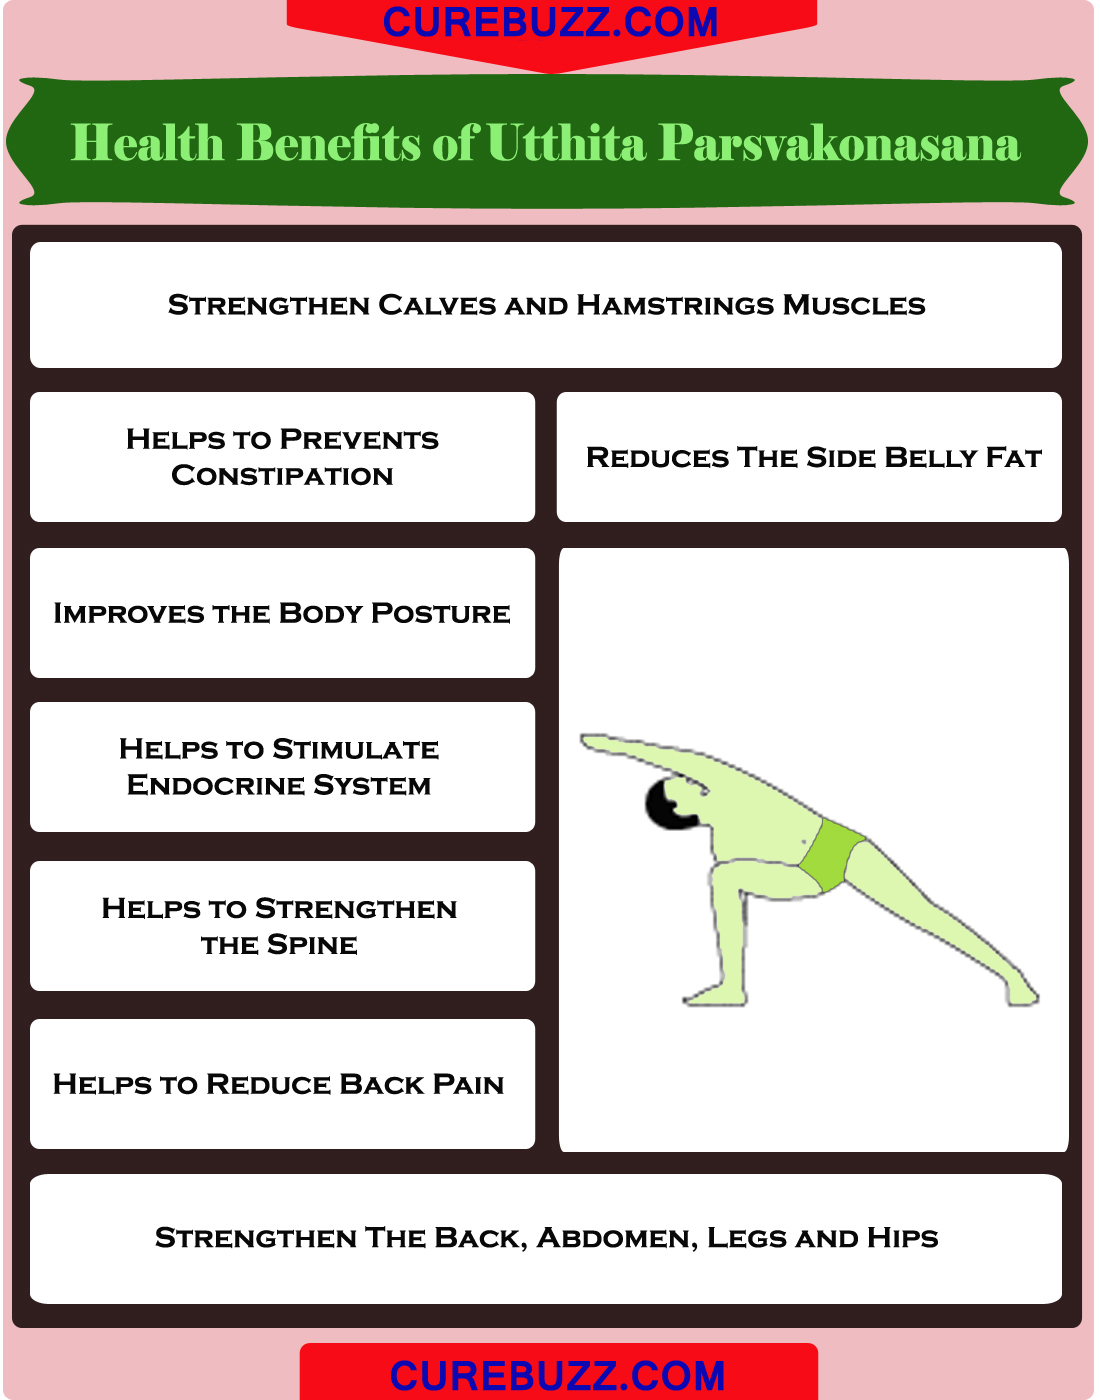 Health Benefits of Utthita Parsvakonasana